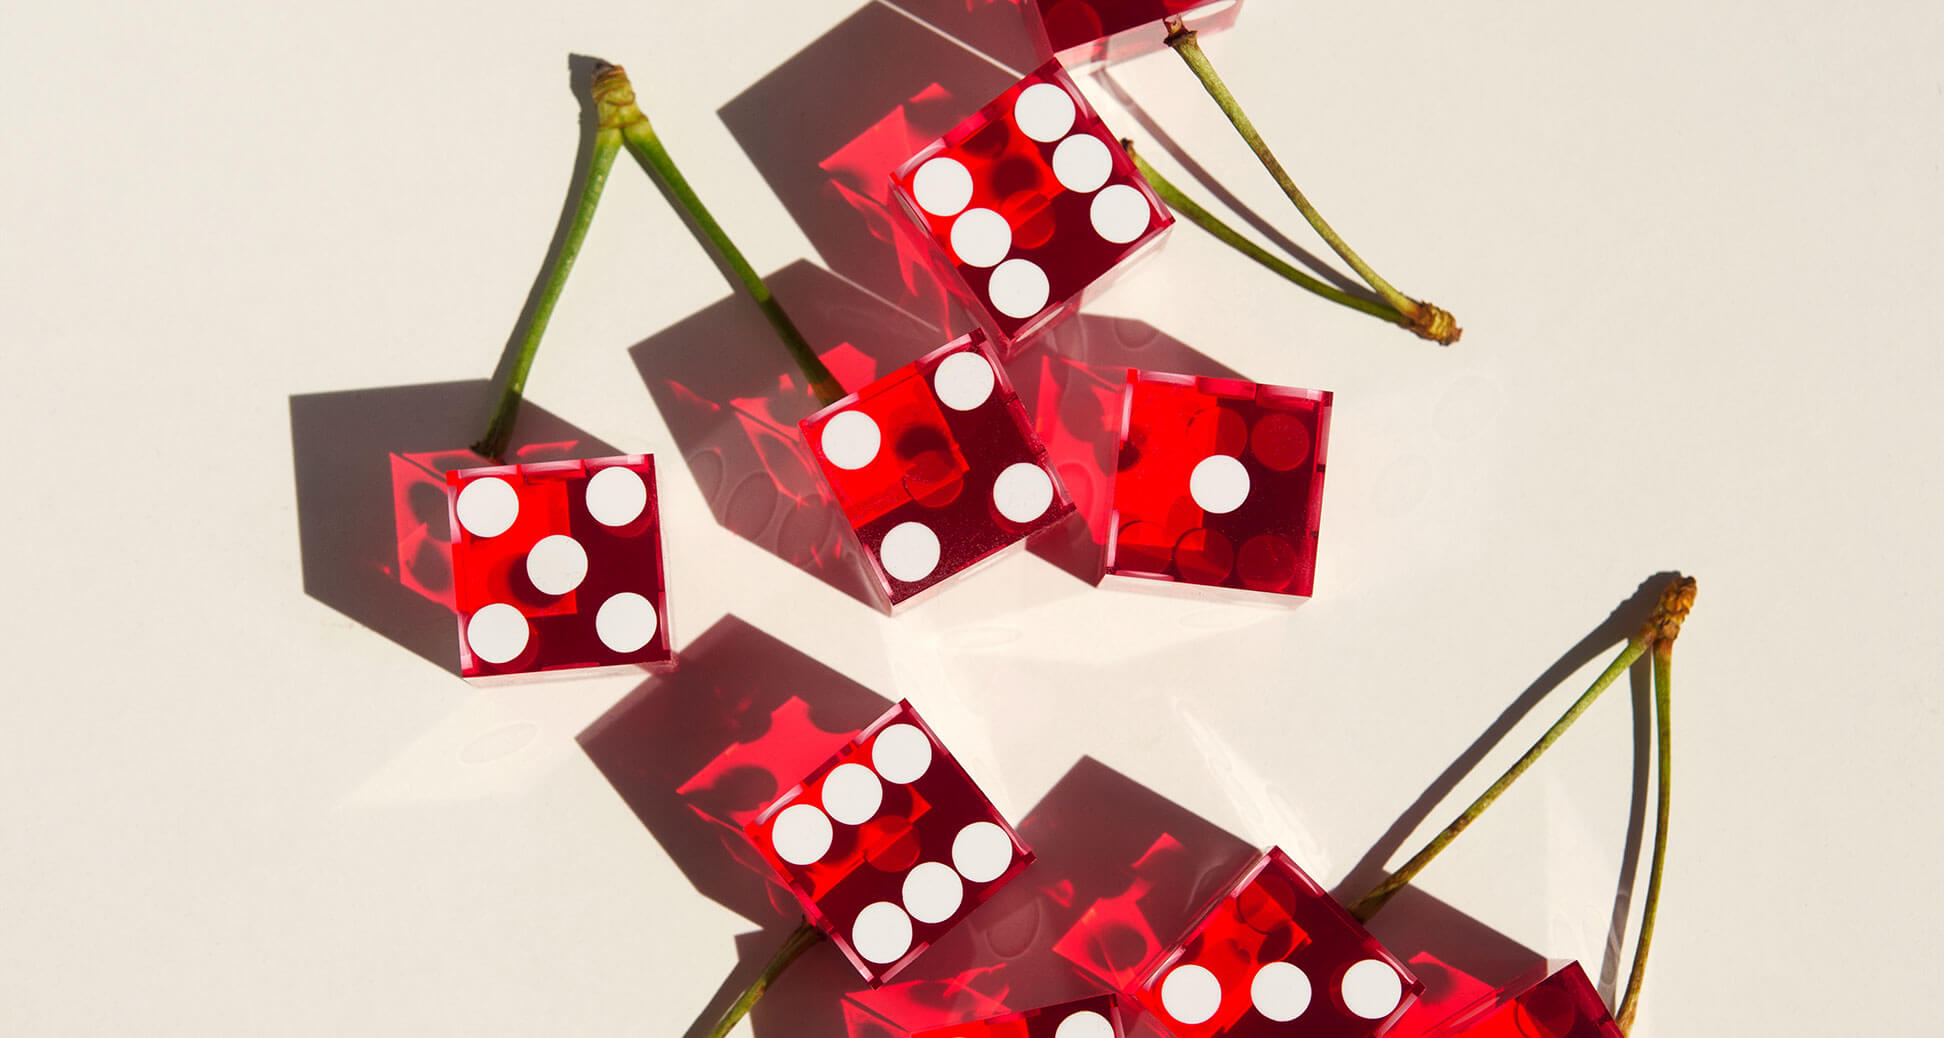 Cherry Dices by Sarah Illenberger